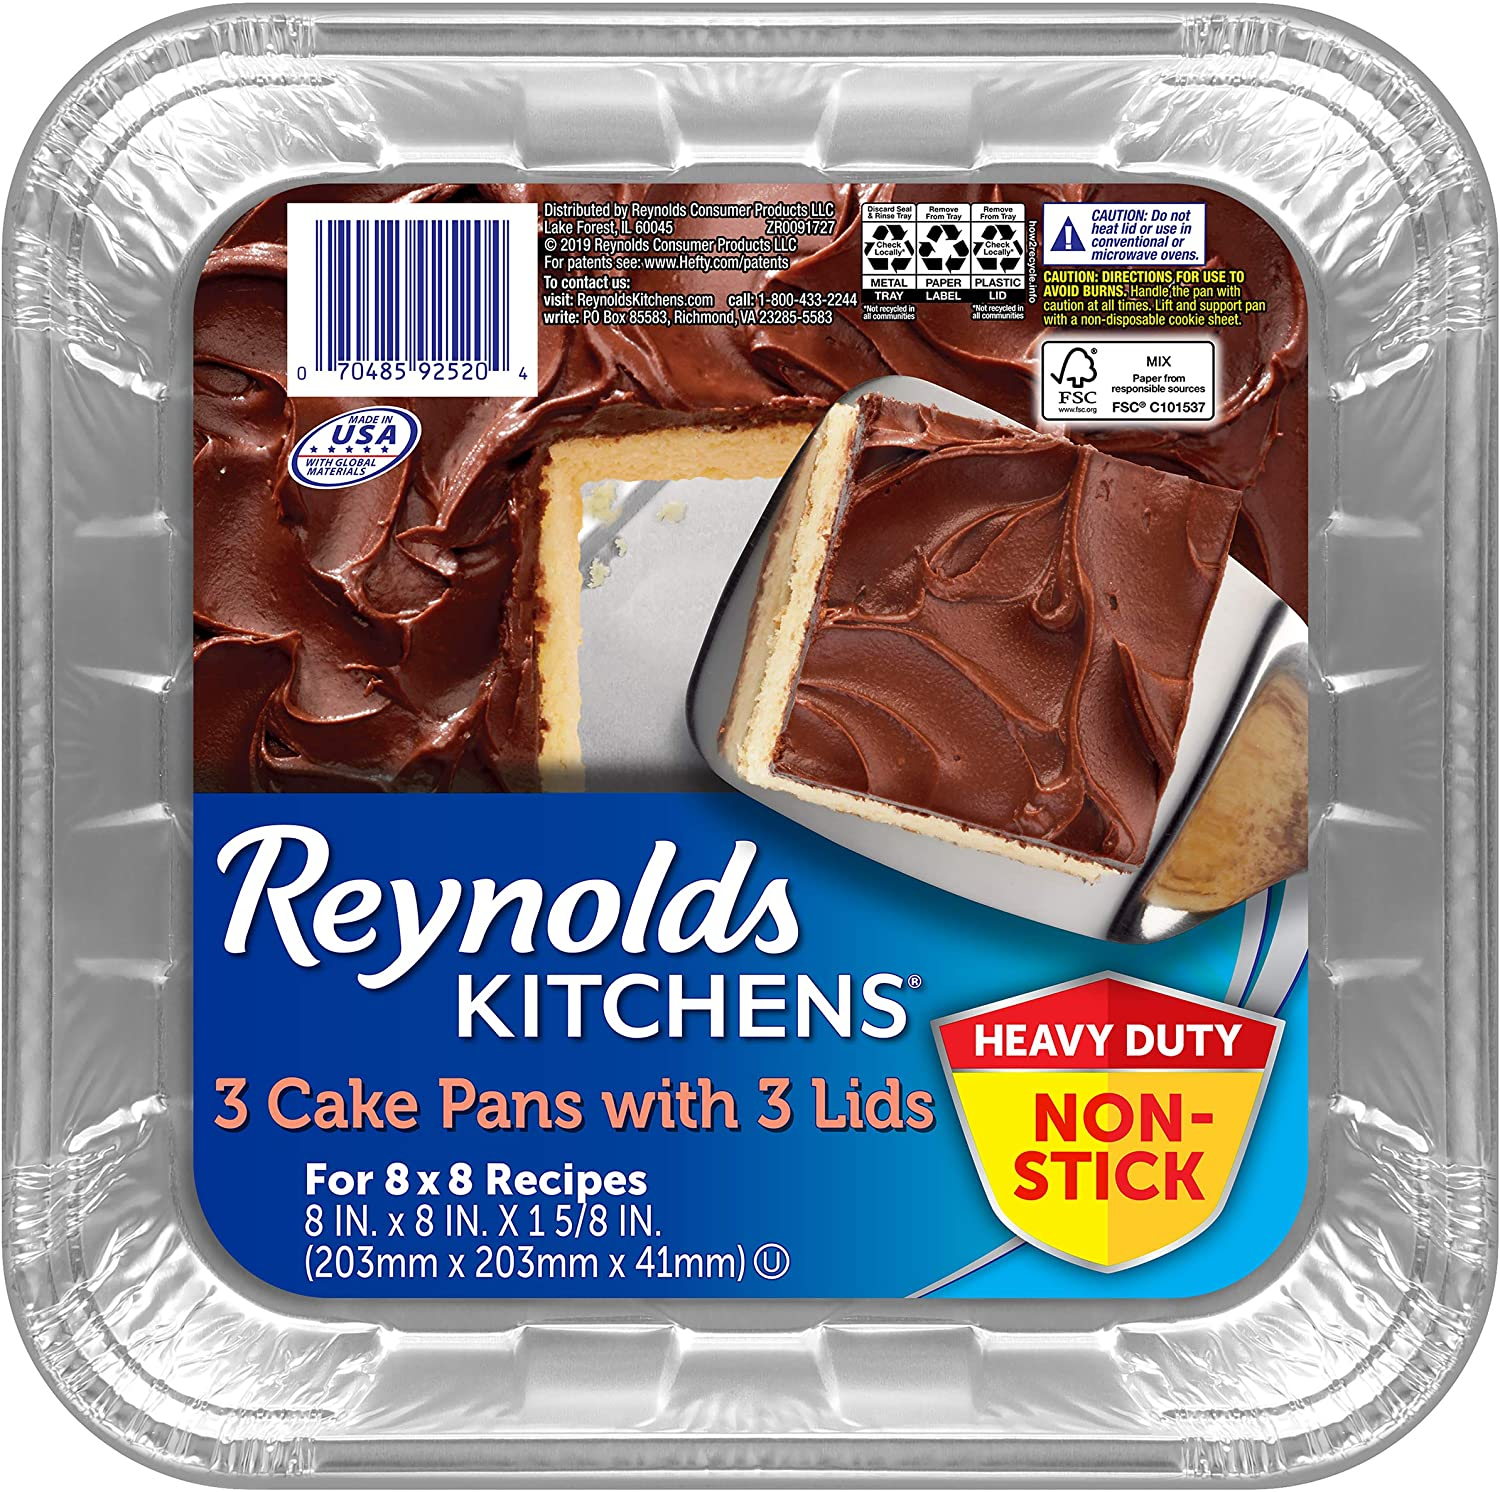 Reynolds Disposable Aluminum Cake Pans with Lids, 8x8 inches, 2 Packages of 3 Pans (6 Total)